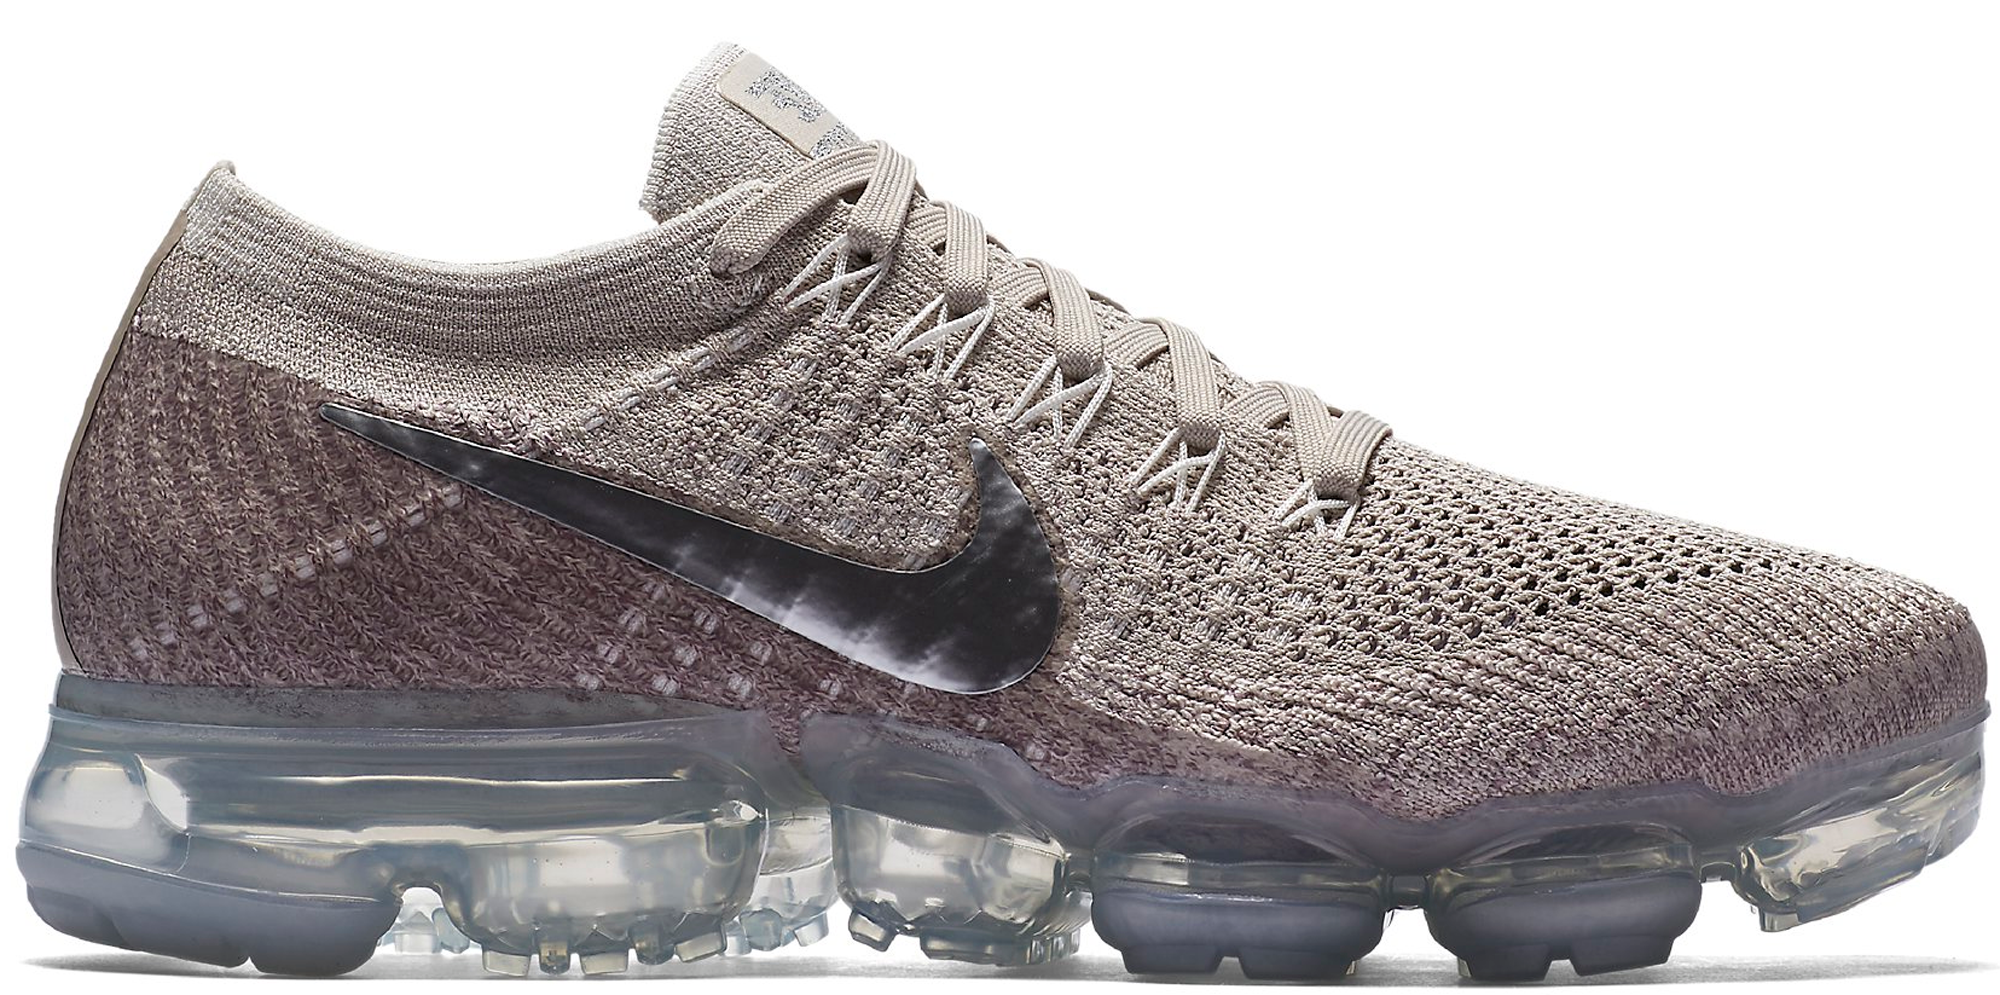 34d6e55b9413 Women s Nike Air VaporMax String - StockX News